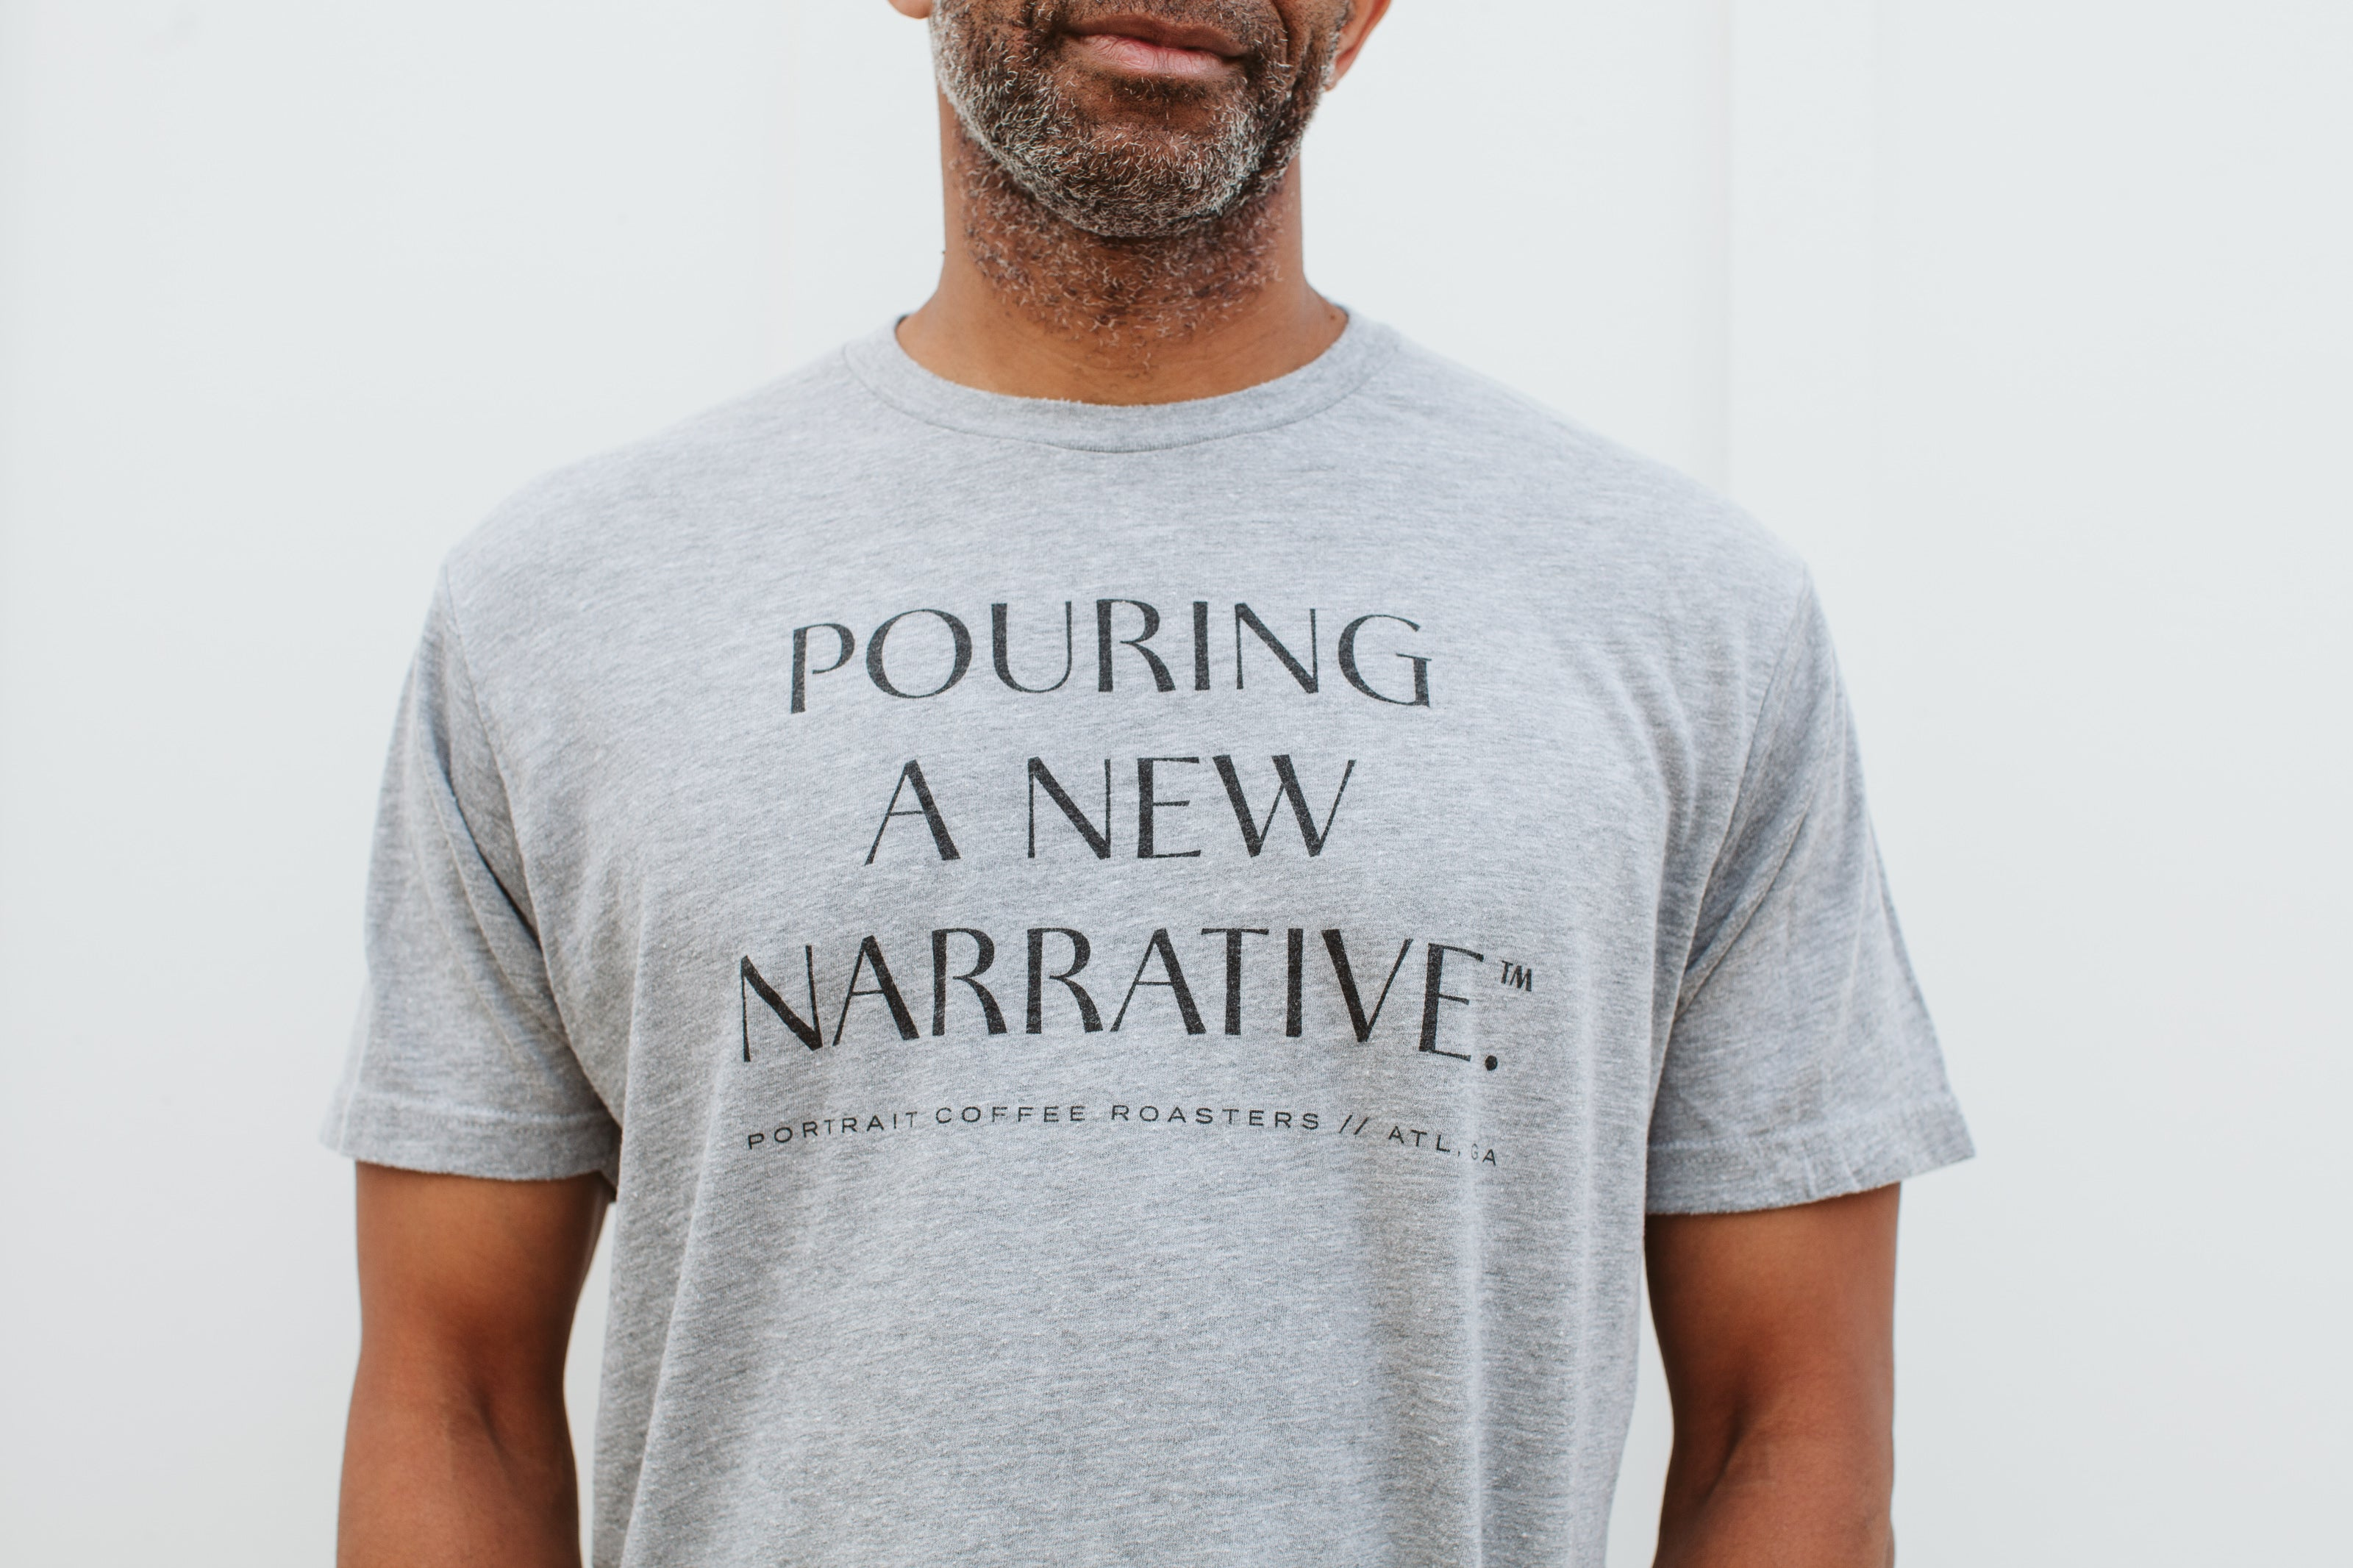 'Pouring a New Narrative' Short Sleeve T-Shirt